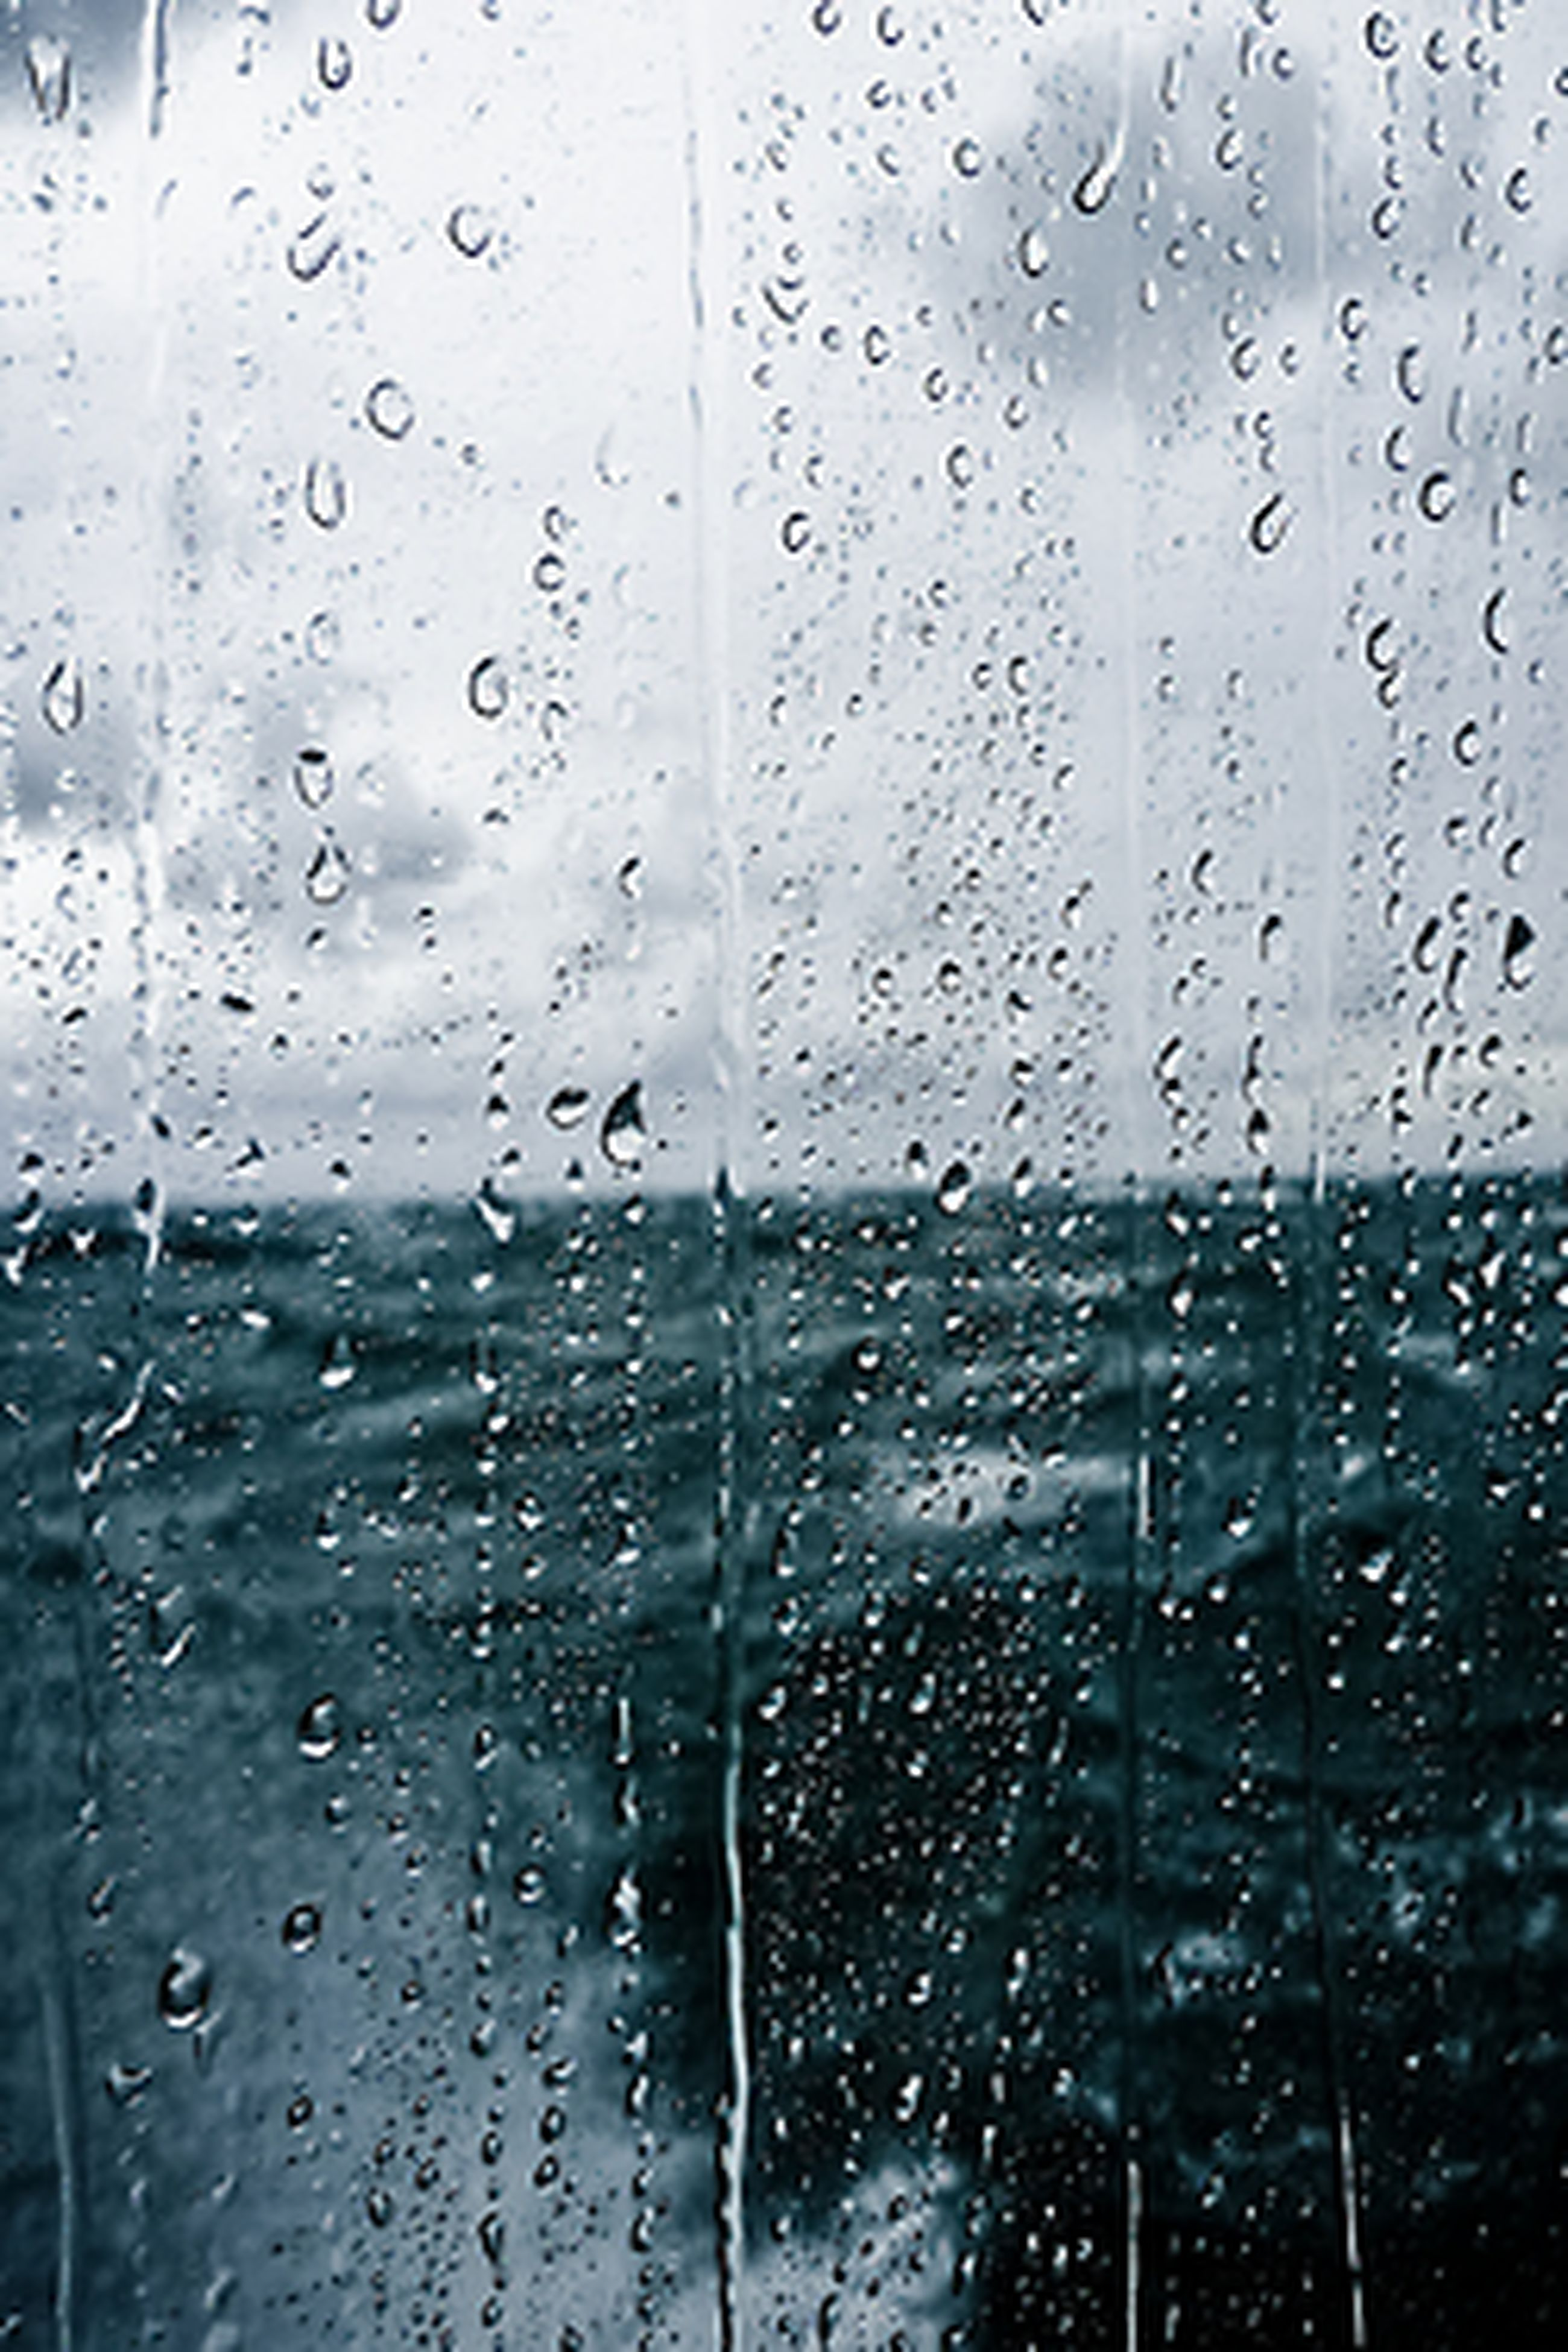 drop, wet, window, indoors, transparent, rain, glass - material, water, raindrop, weather, season, full frame, glass, backgrounds, focus on foreground, close-up, monsoon, sky, no people, droplet